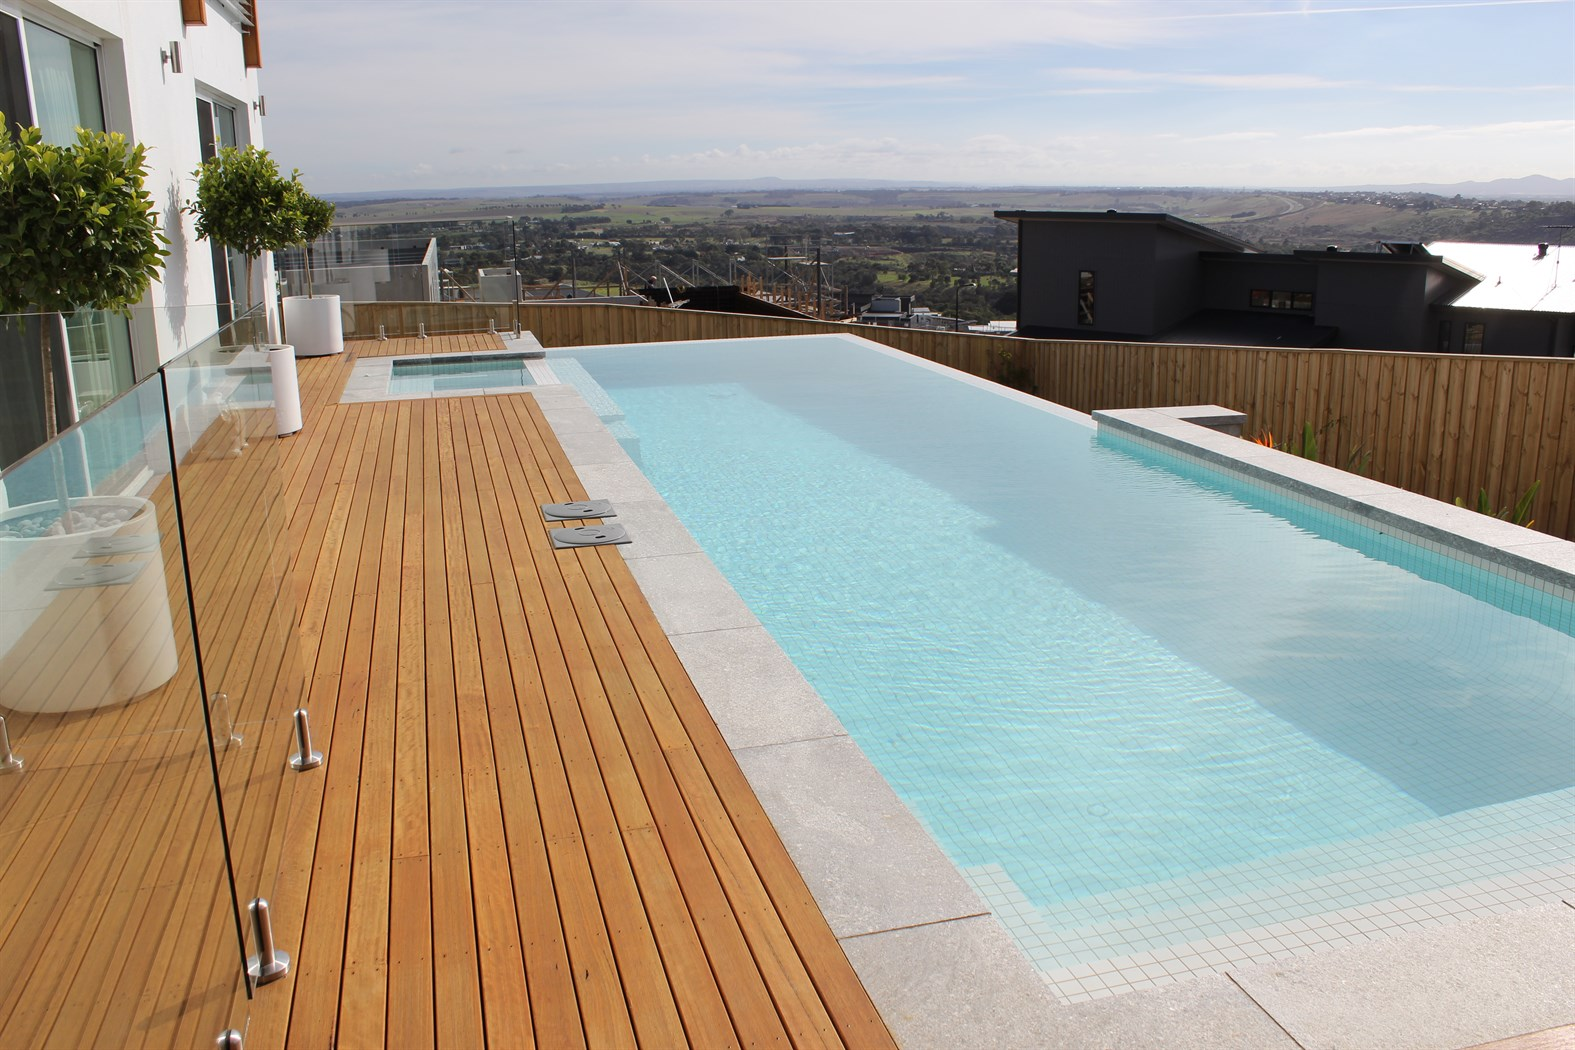 Great ocean pools swimming pool builder in melbourne and for Swimming lap pools